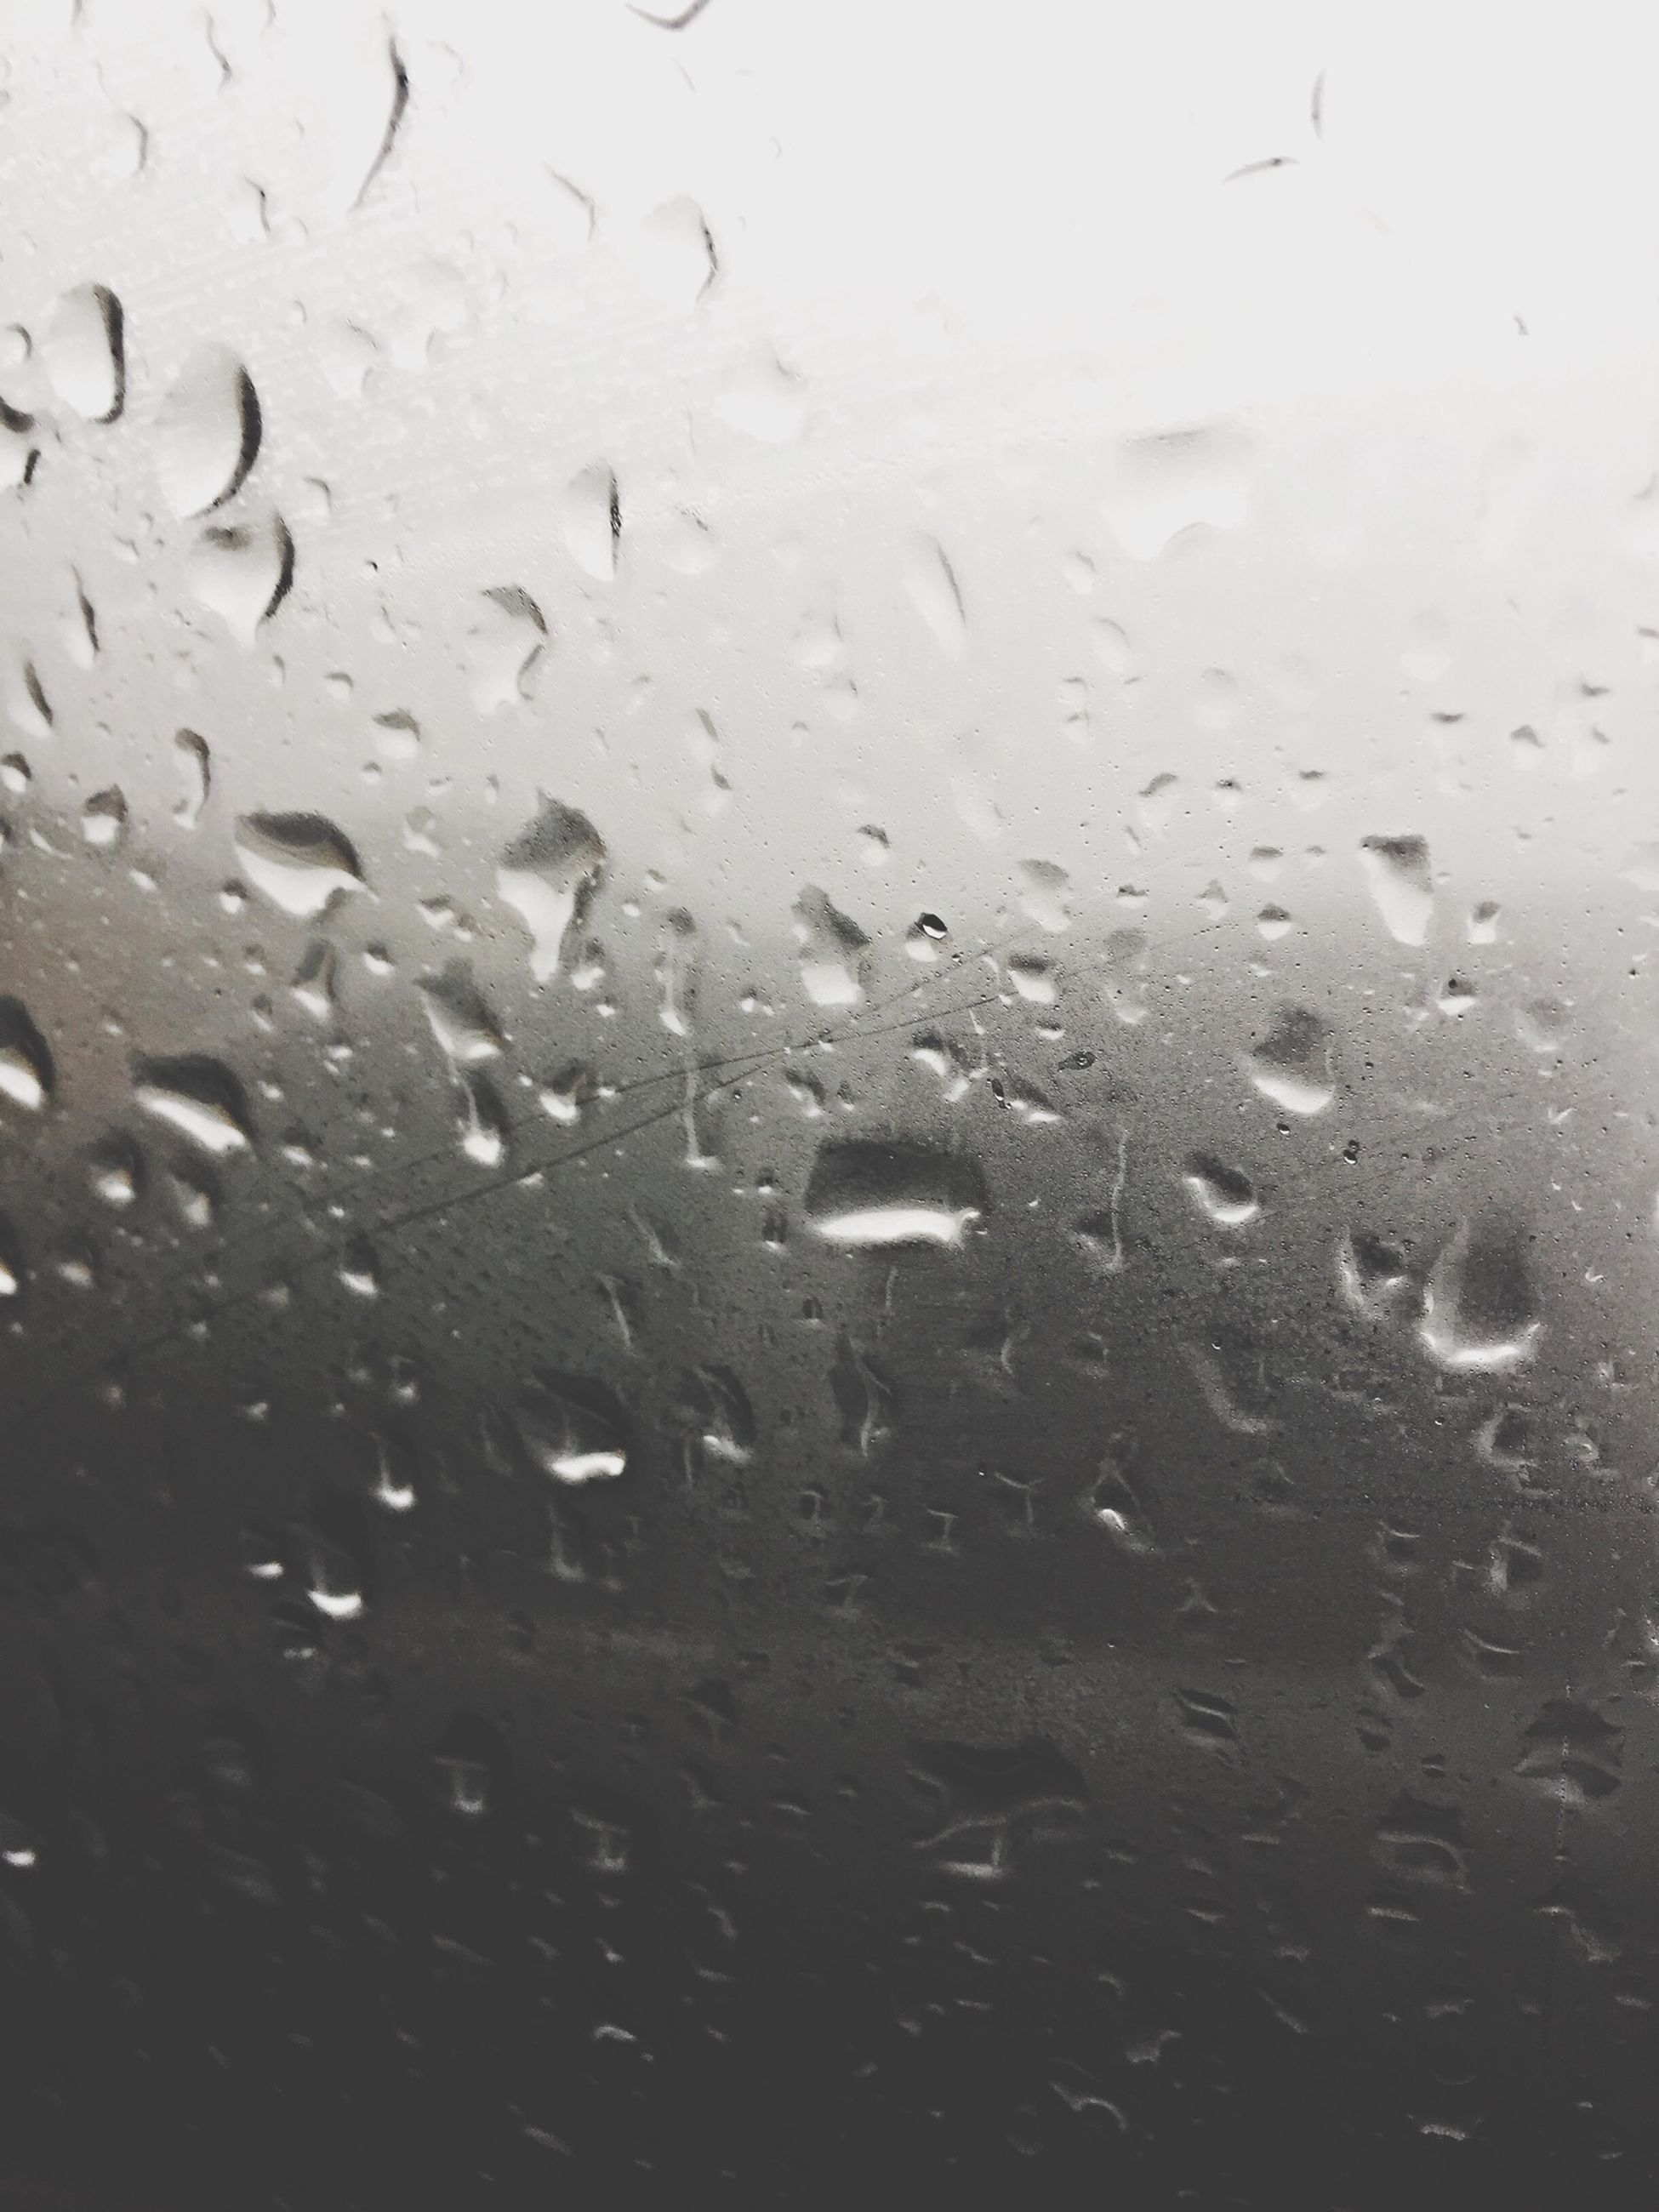 drop, wet, window, full frame, water, backgrounds, indoors, transparent, rain, glass - material, raindrop, close-up, glass, weather, season, focus on foreground, sky, no people, droplet, water drop